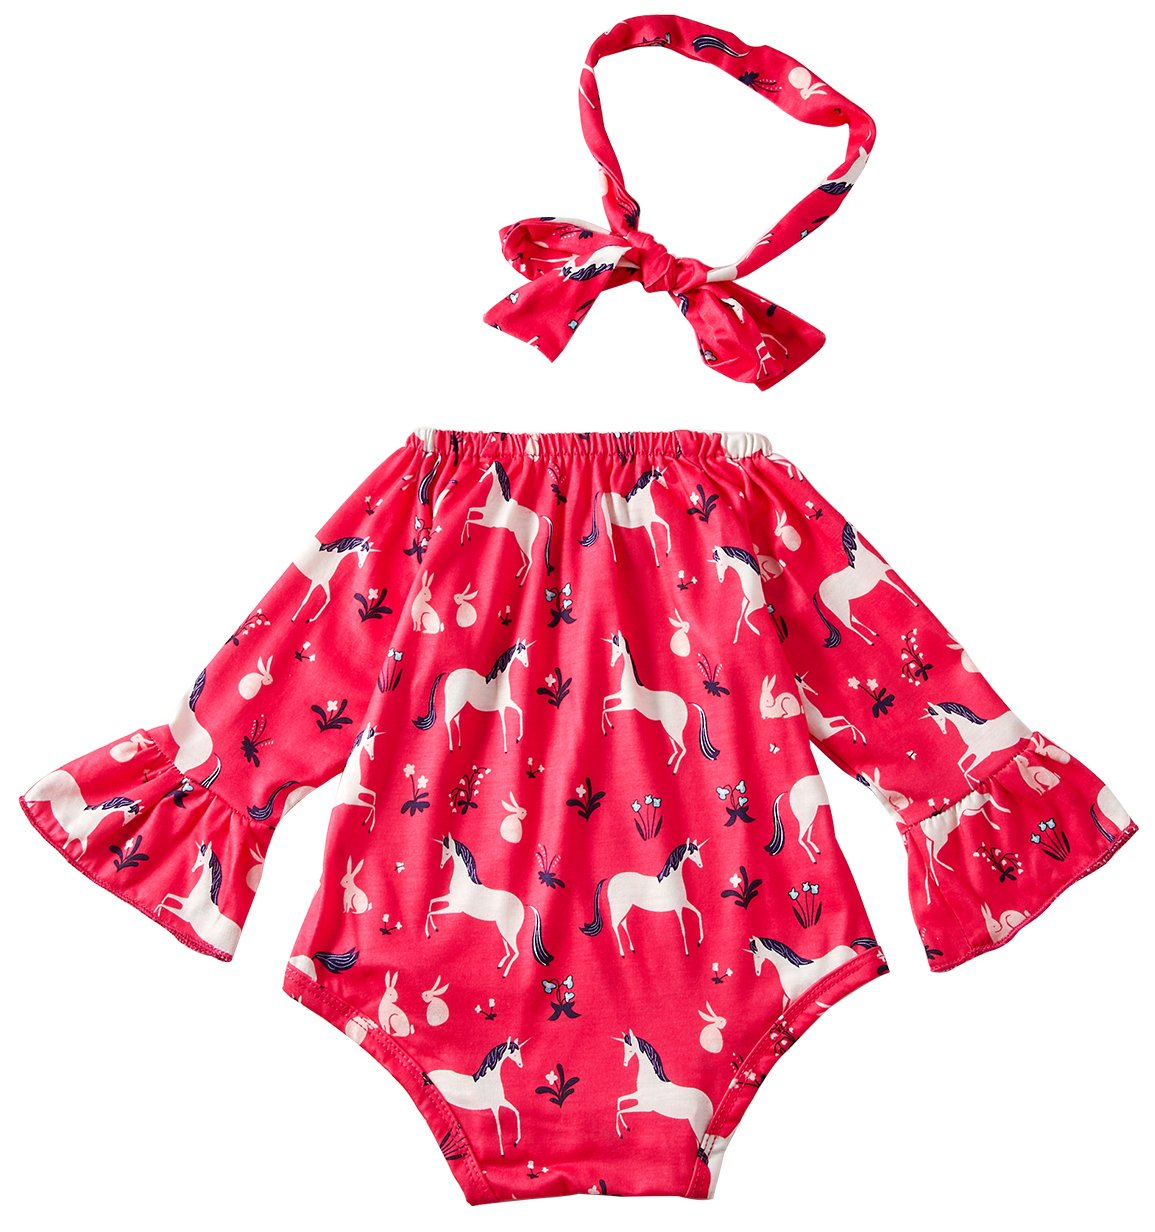 Leapparel Fancy Design Off Shoulder Pom Pom Romper Little Girl Matching Outfits Monogrammed Baby Bodysuit for Girls and Headbands Unicorn Red 6-12M/80